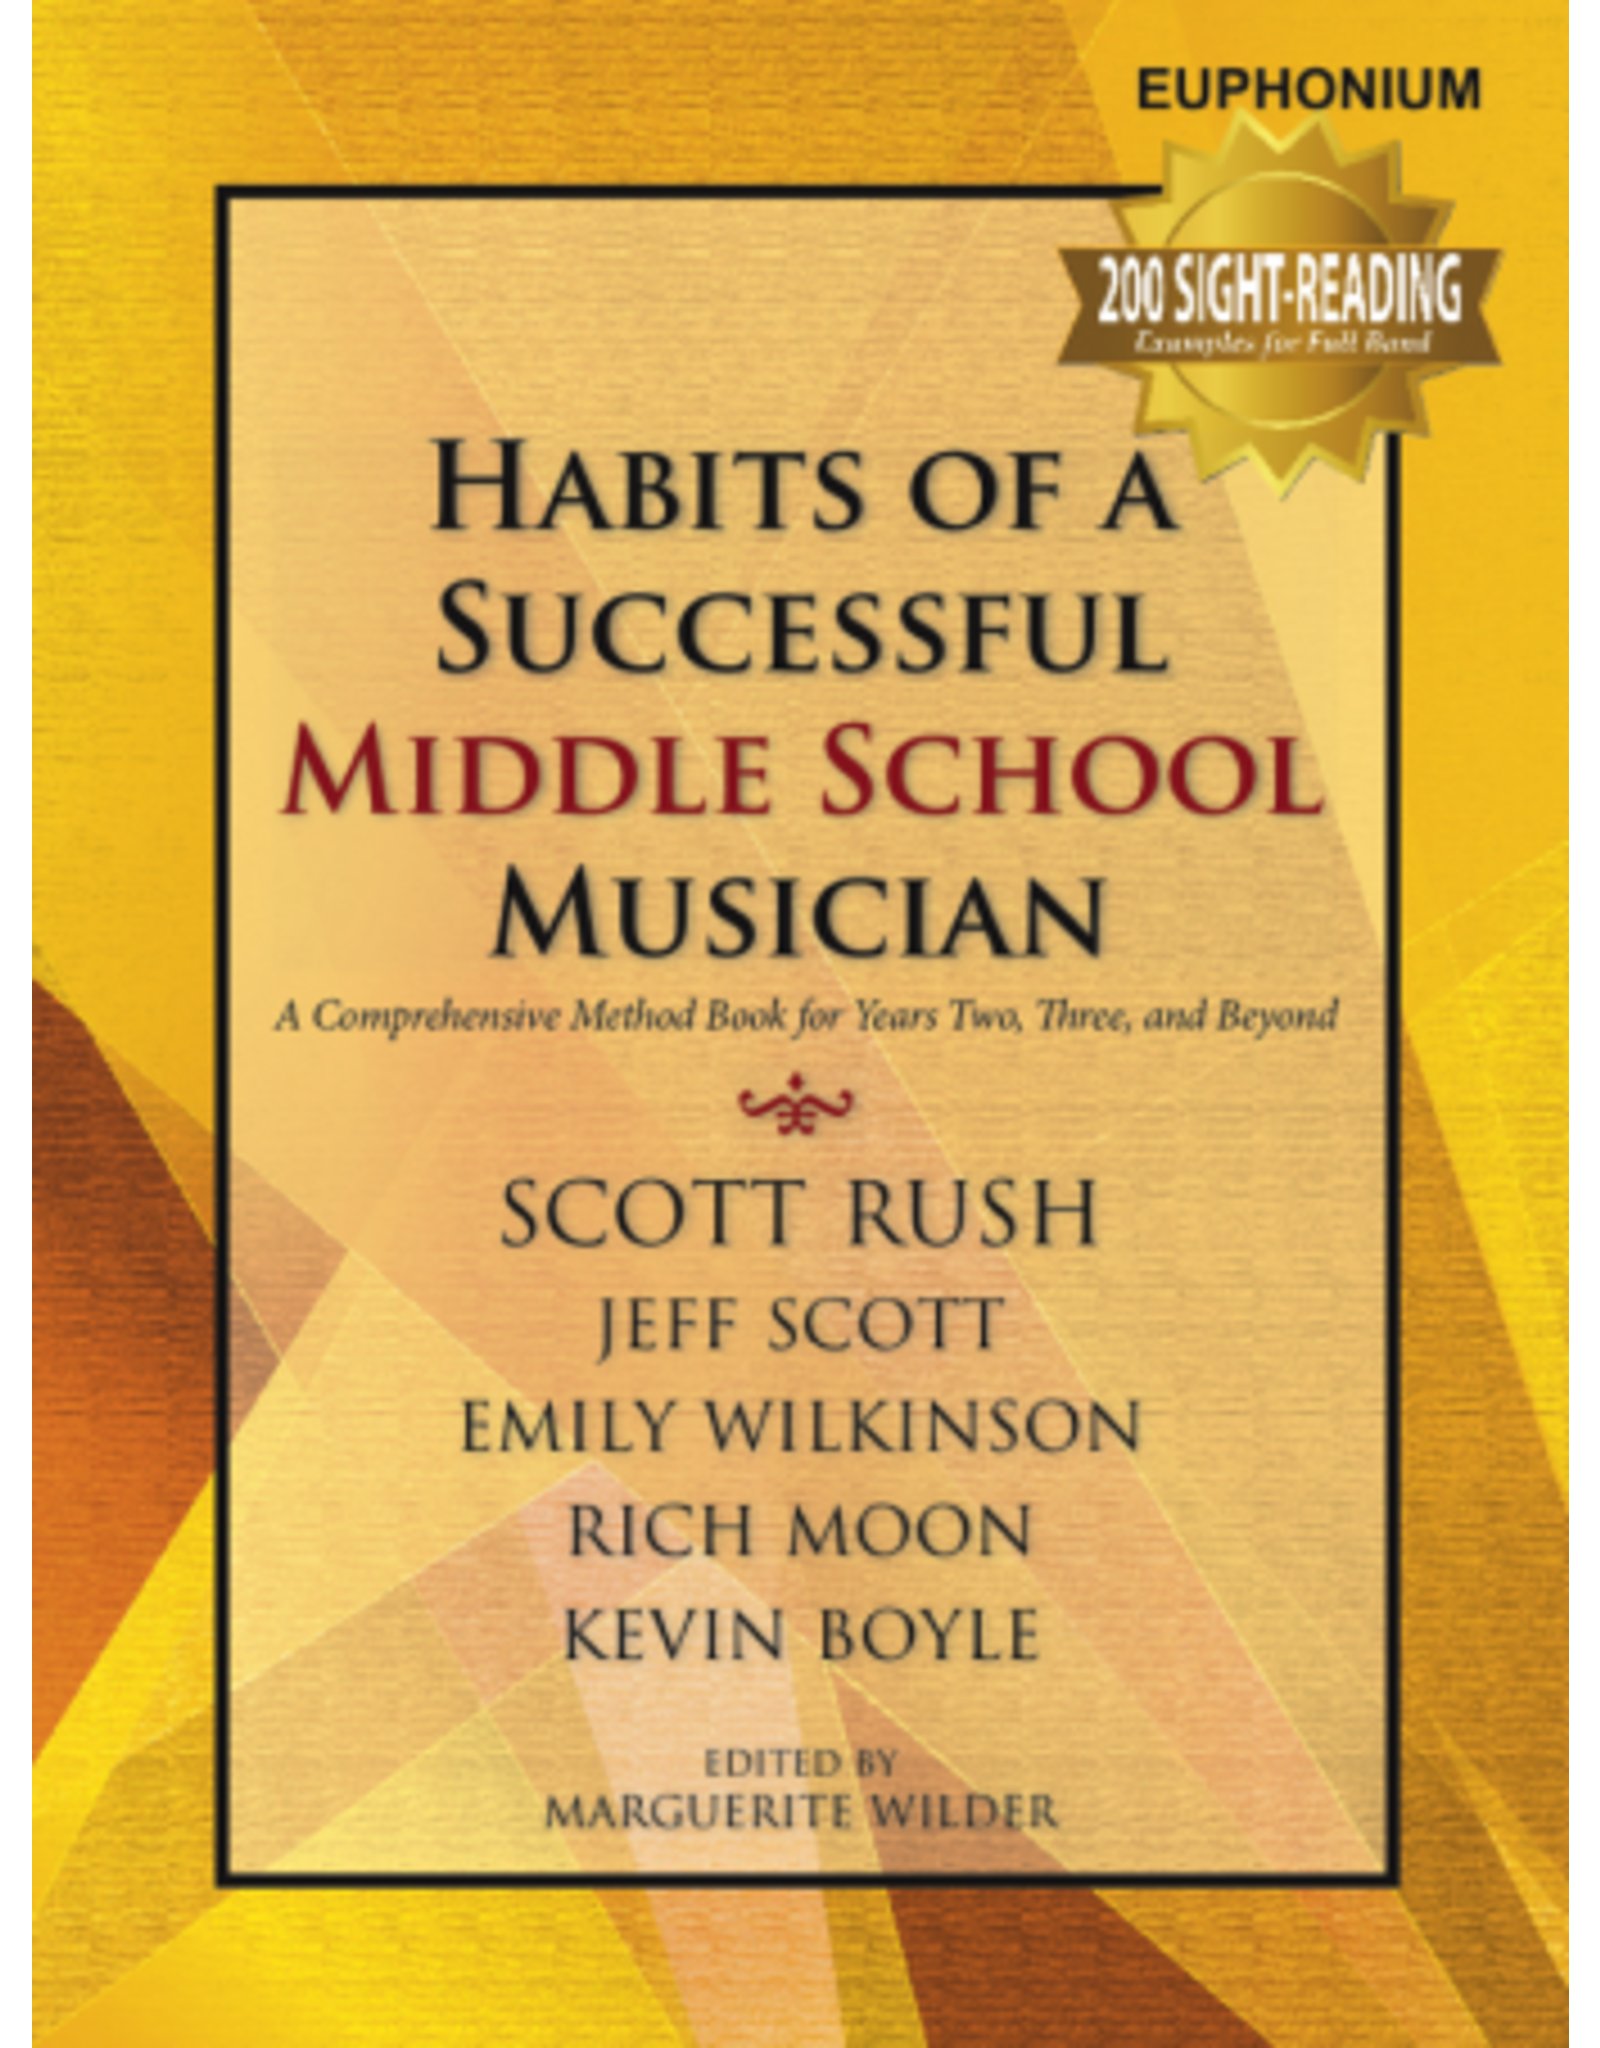 GIA Publications Habits of a Successful Middle School Musician-Euphonium